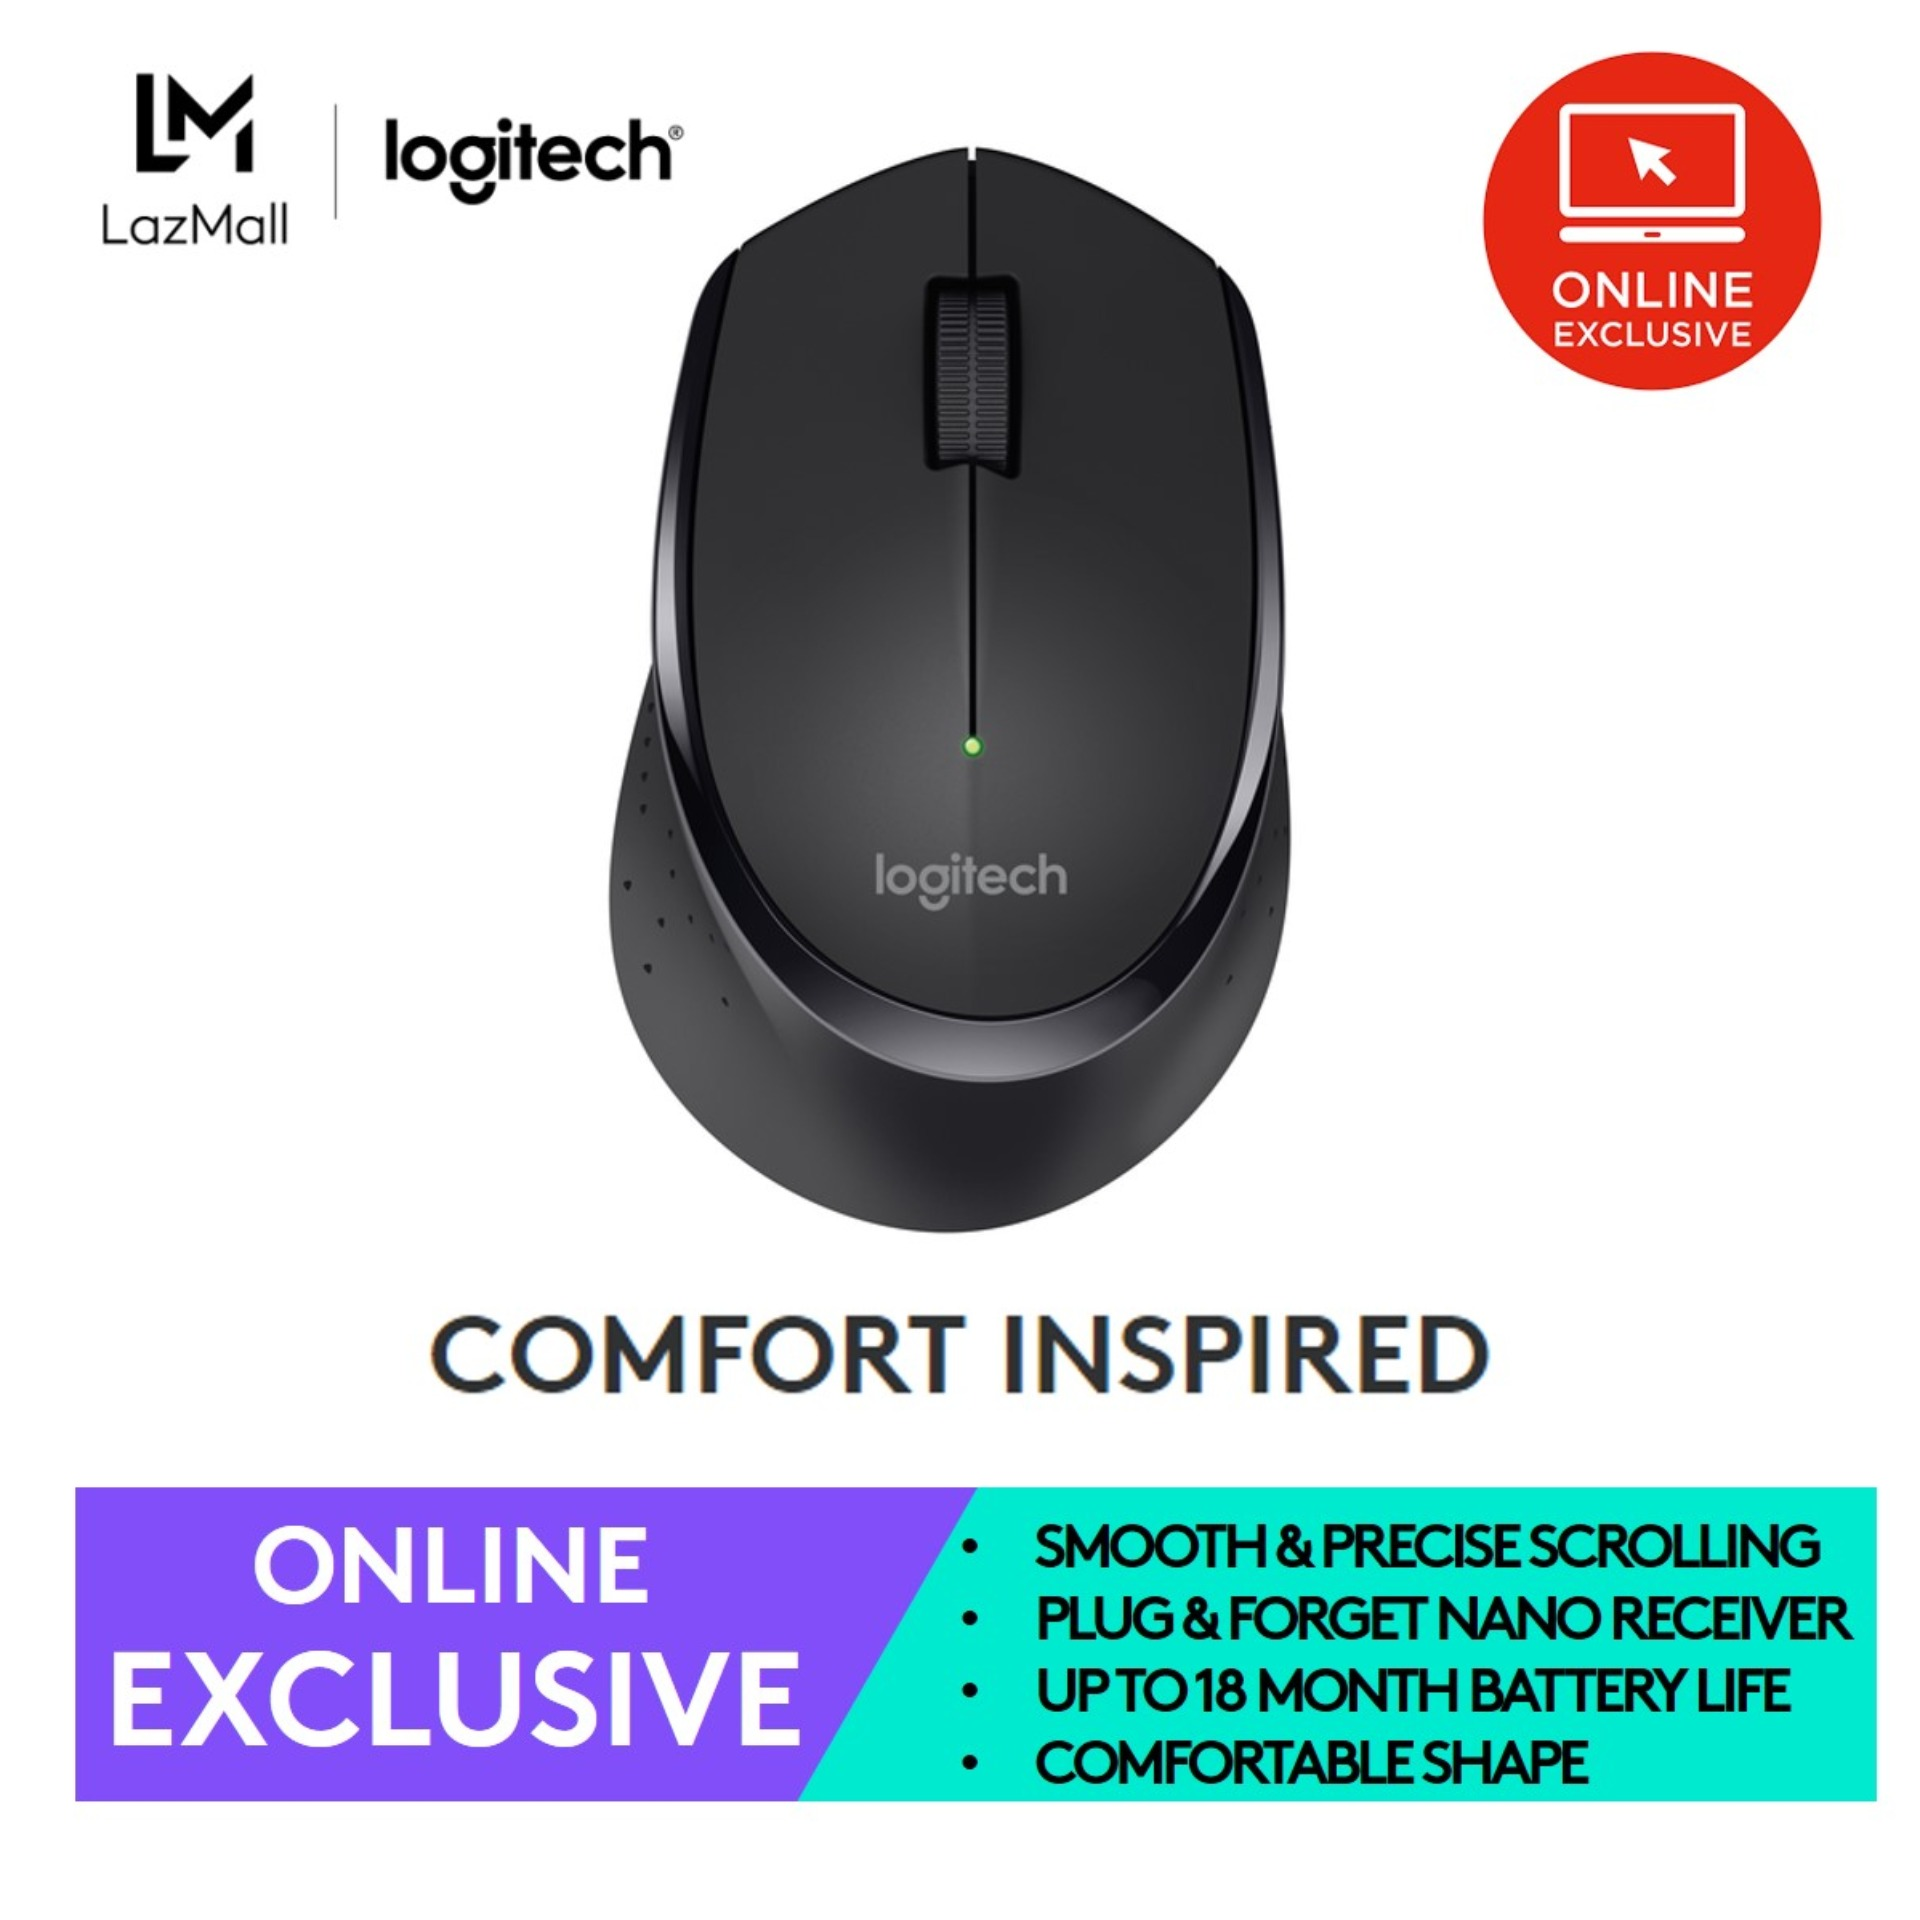 (TOP SELLER) Logitech Wireless Mouse M275 with Textured thumb rest for better grip